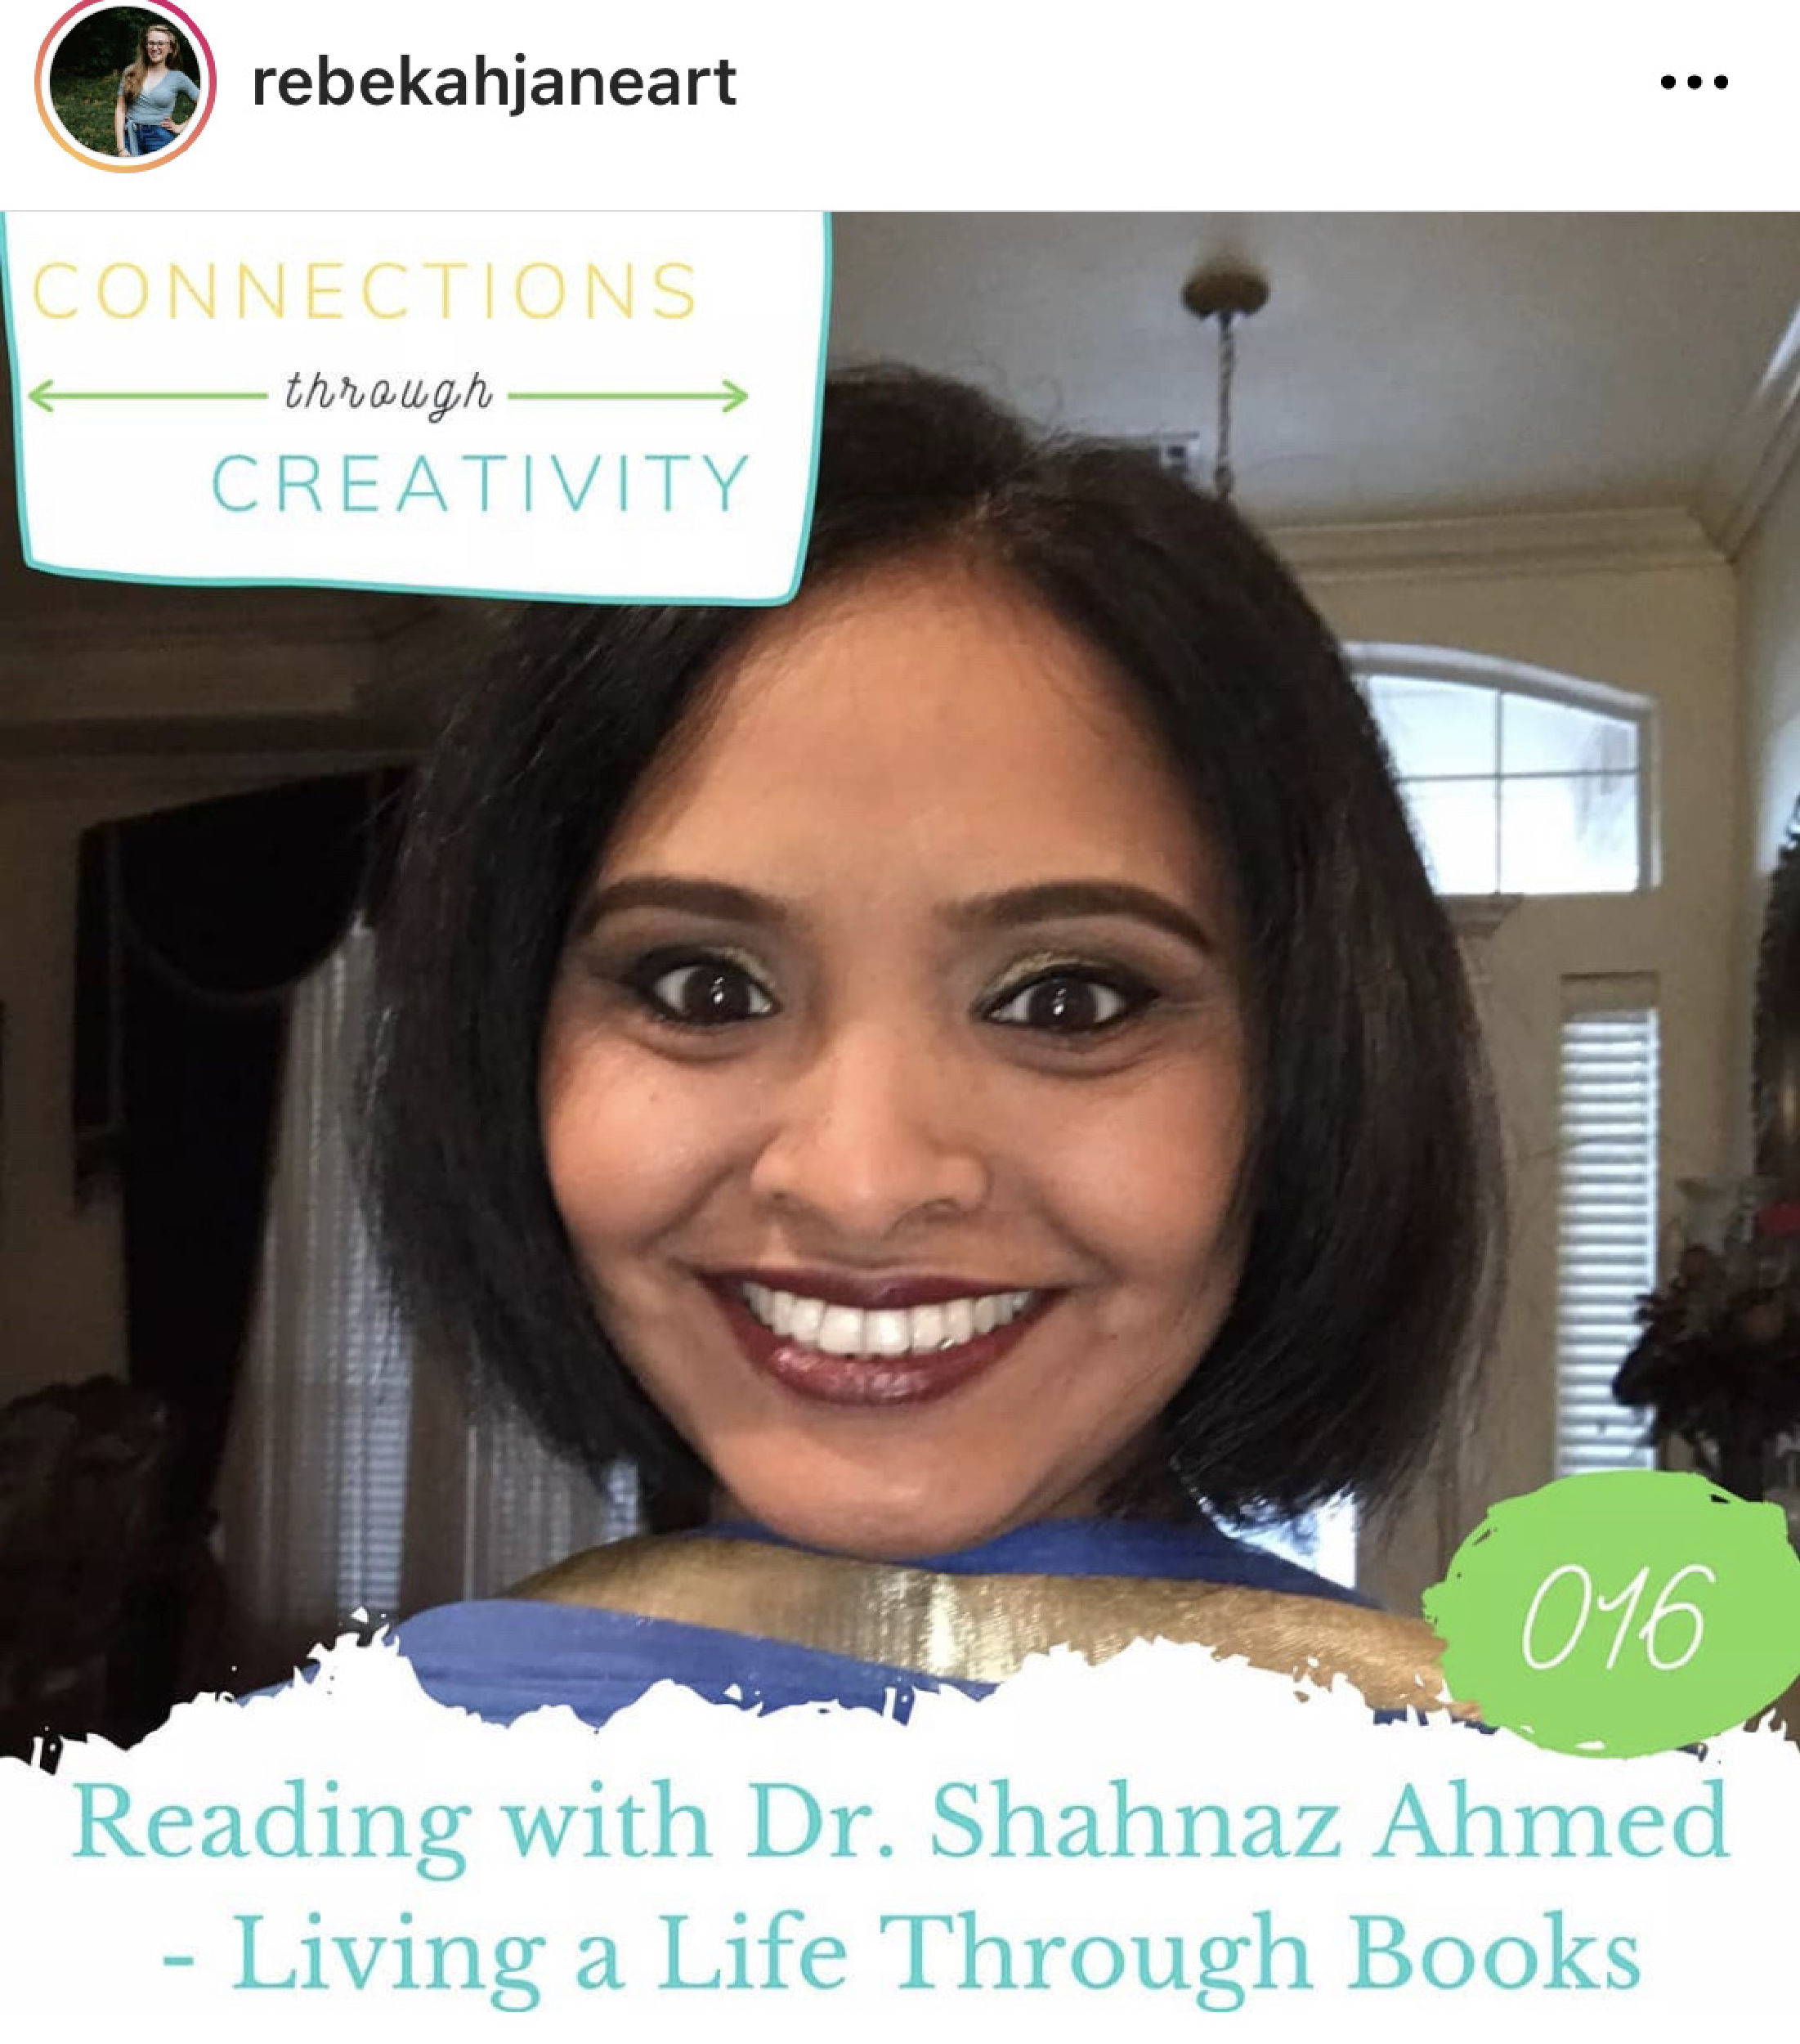 From connections through creativity podcast!